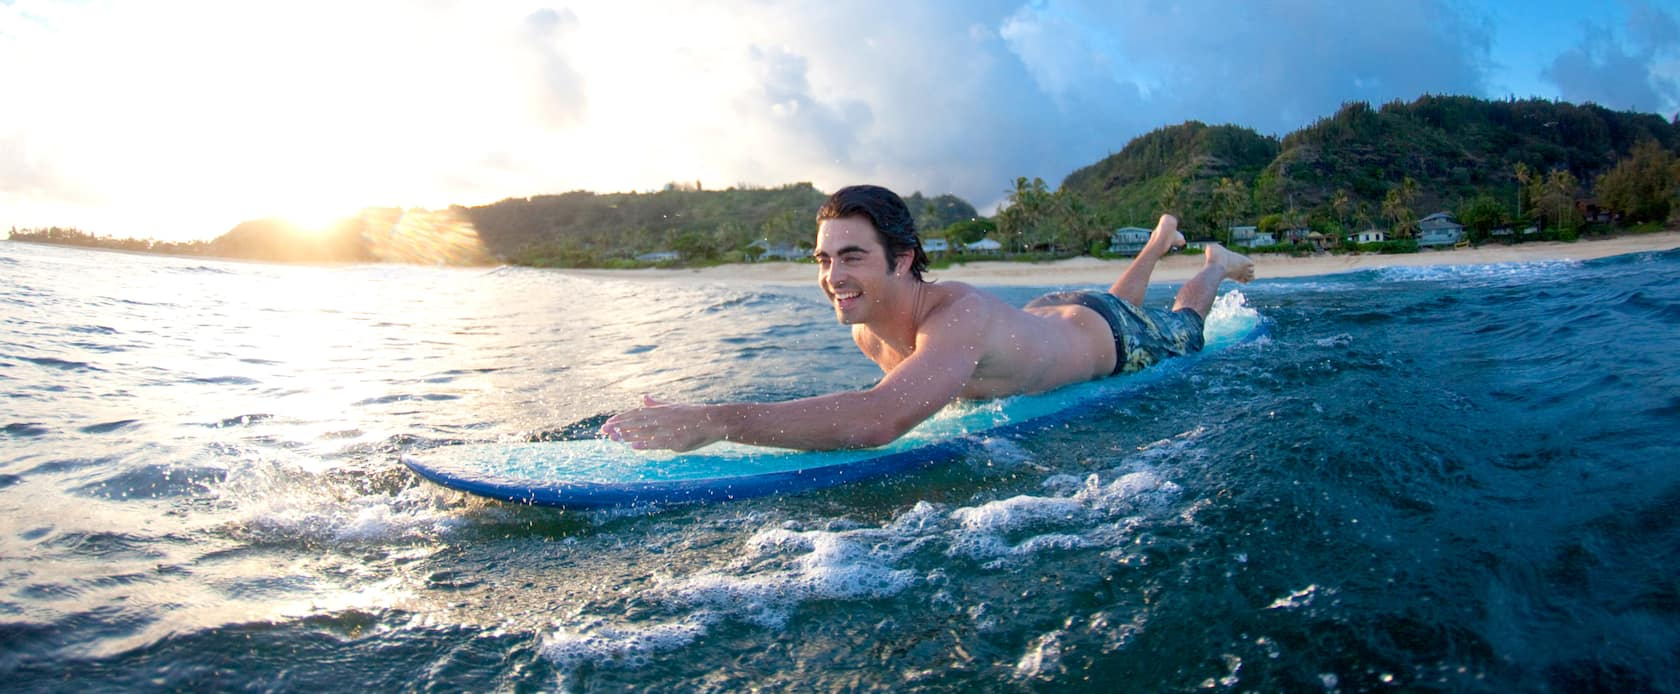 A young man on a surfboard paddles out into the ocean as a coastline with tree-covered hills stretches behind him